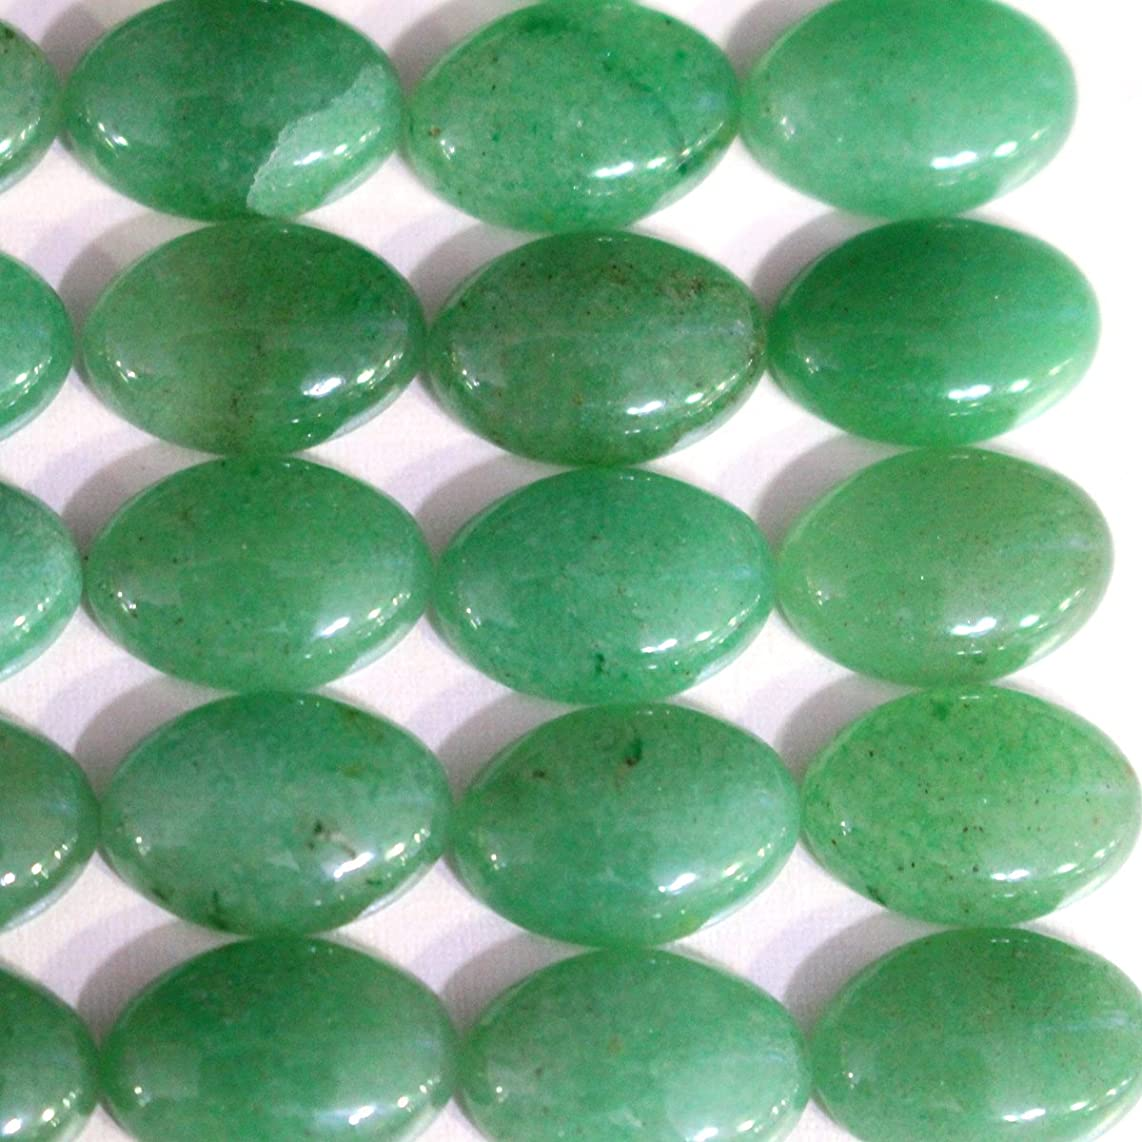 10pcs Stone Natural Real Gemstones Green Aventurine Oval 10*14mm Cabochons for Jewelry Making Beads Cabs